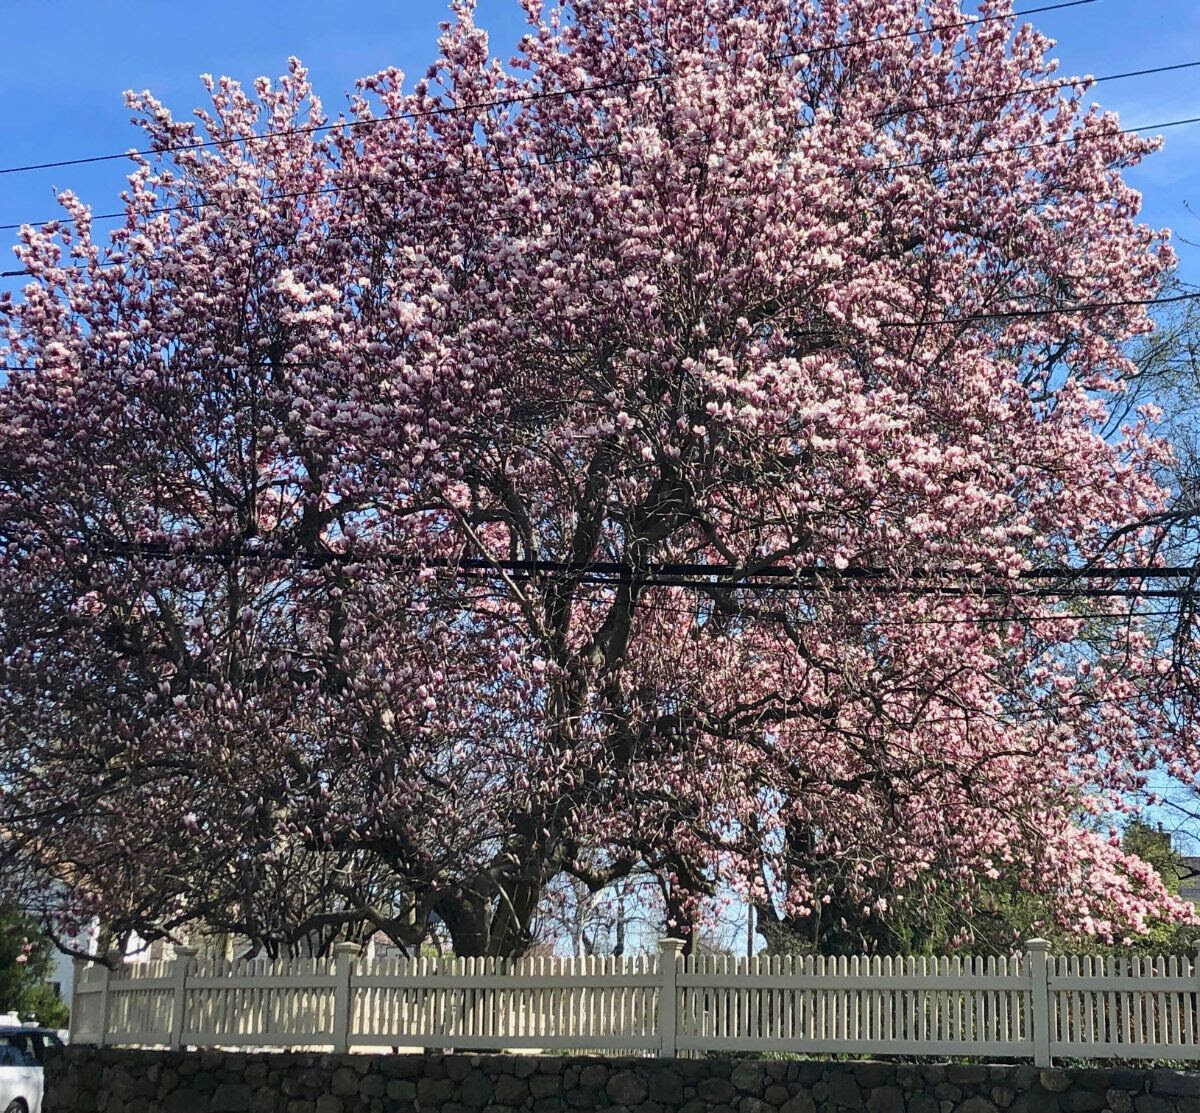 One of the most glorious spring trees in town is the enormous blossom-laden tulip magnolia,  Magnolia x soulaneana,  on the corner of Edgewater and Sound Beach Avenue, set off by a stone wall and white picket fence (too bad we can't have buried utility wires in Old Greenwich!)  I look forward to this site every spring!